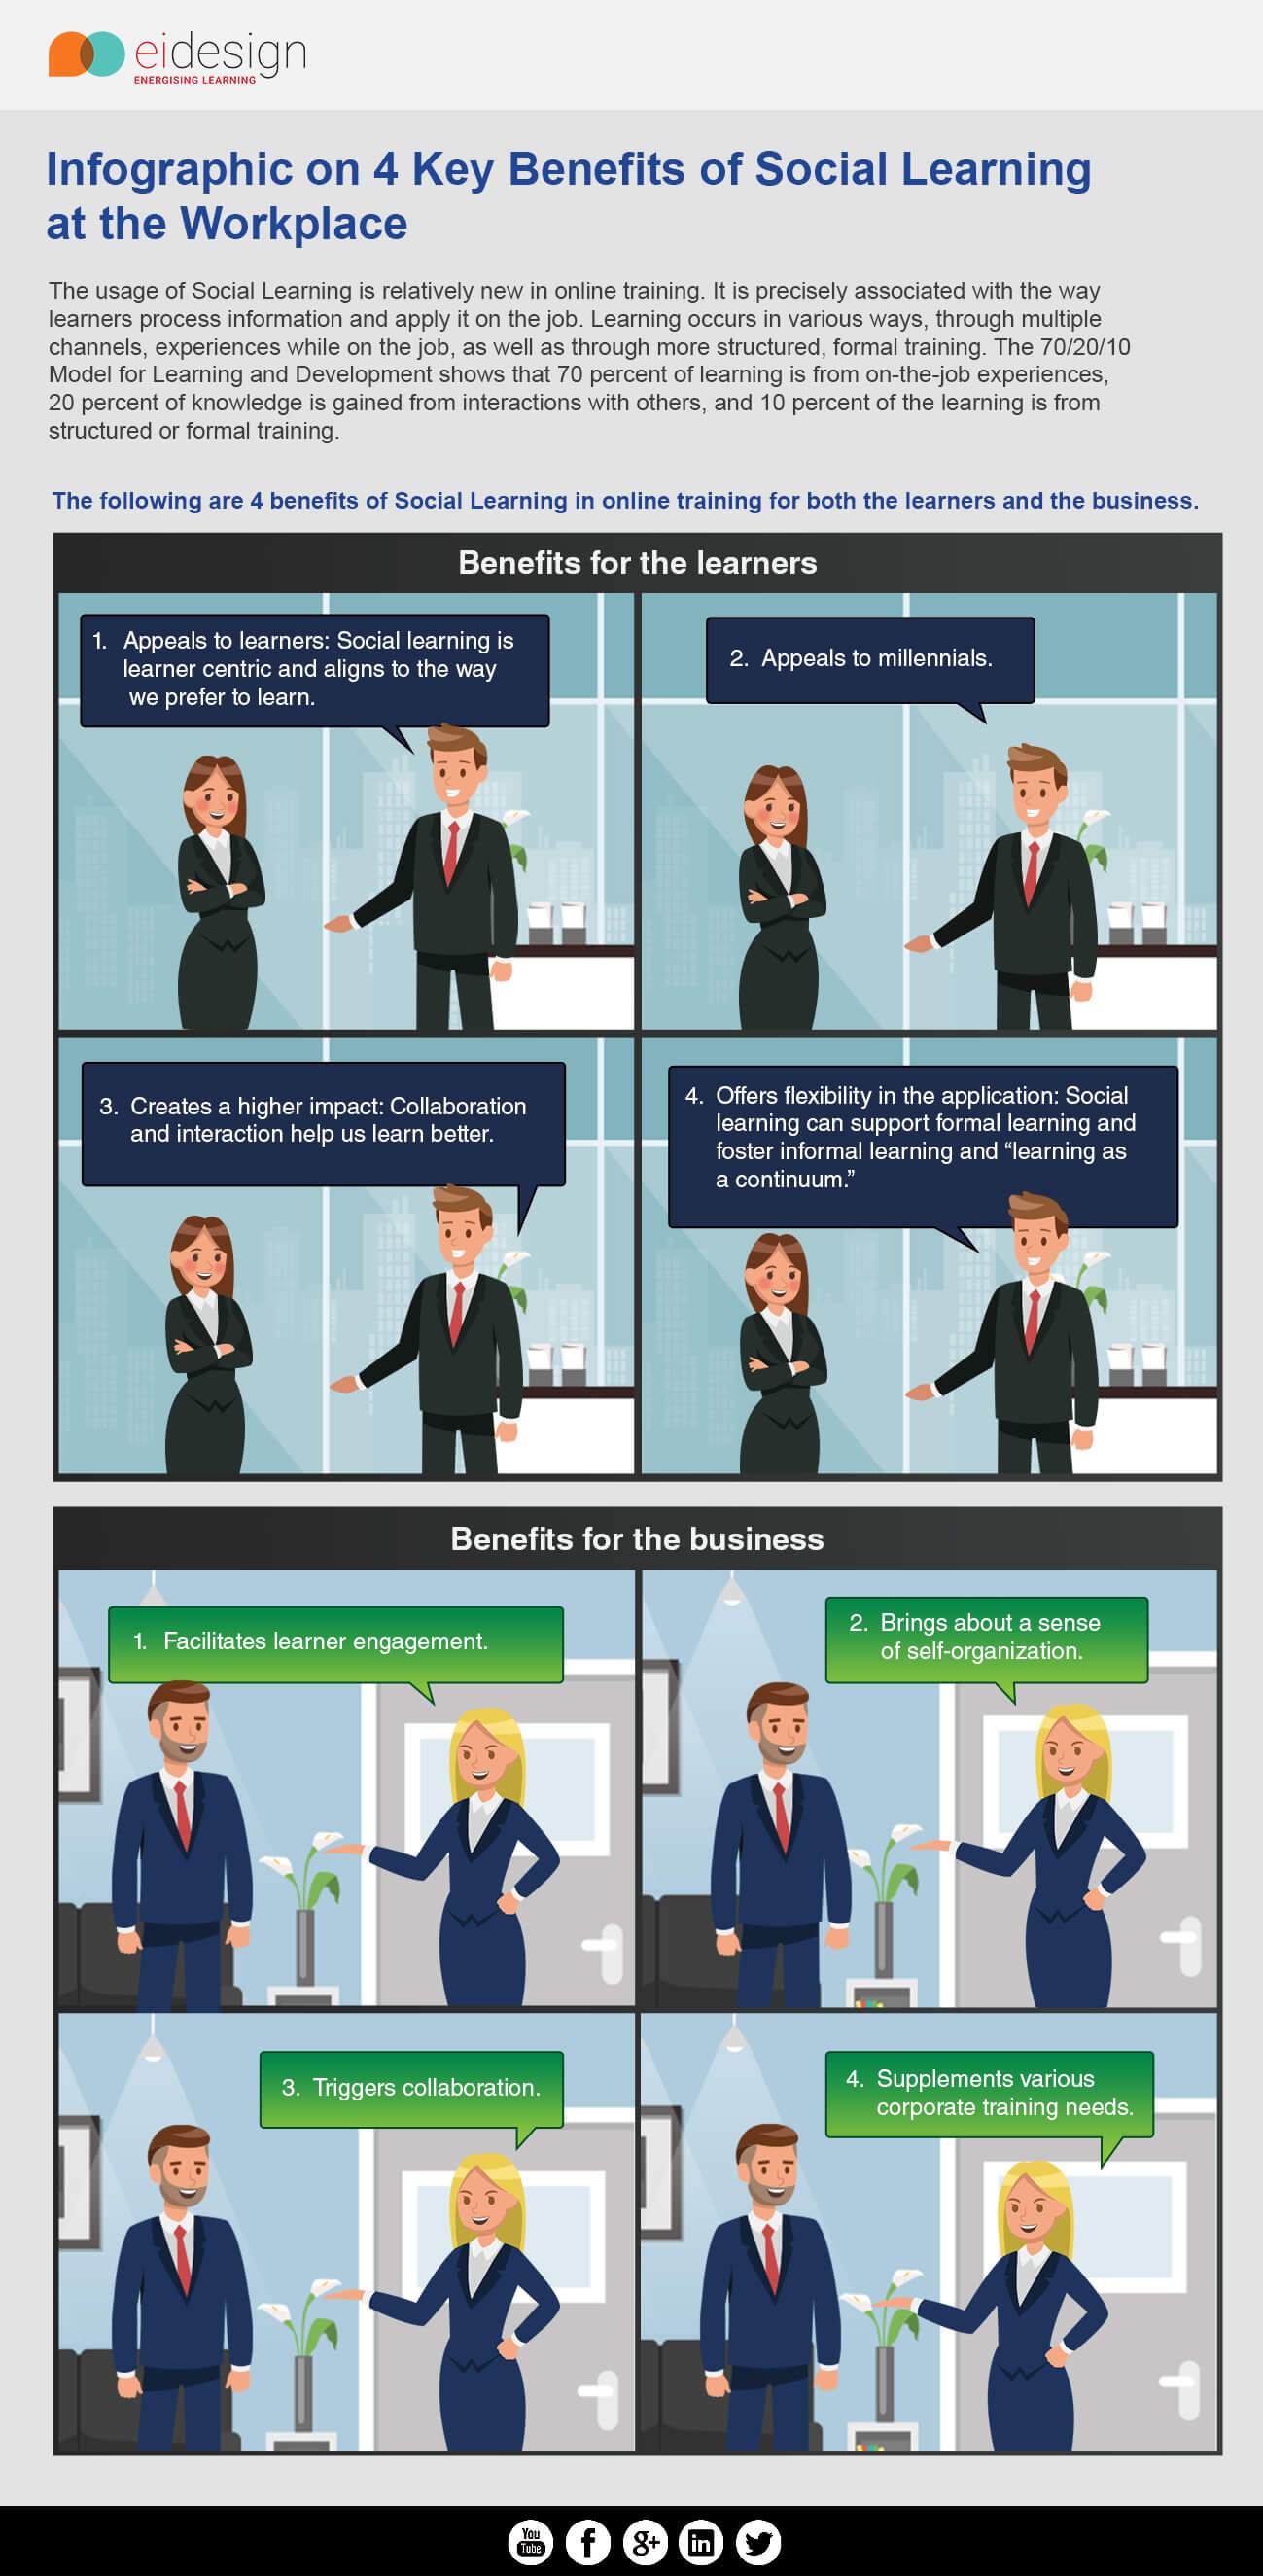 Infographic on 4 Key Benefits of Social Learning at the Workplace